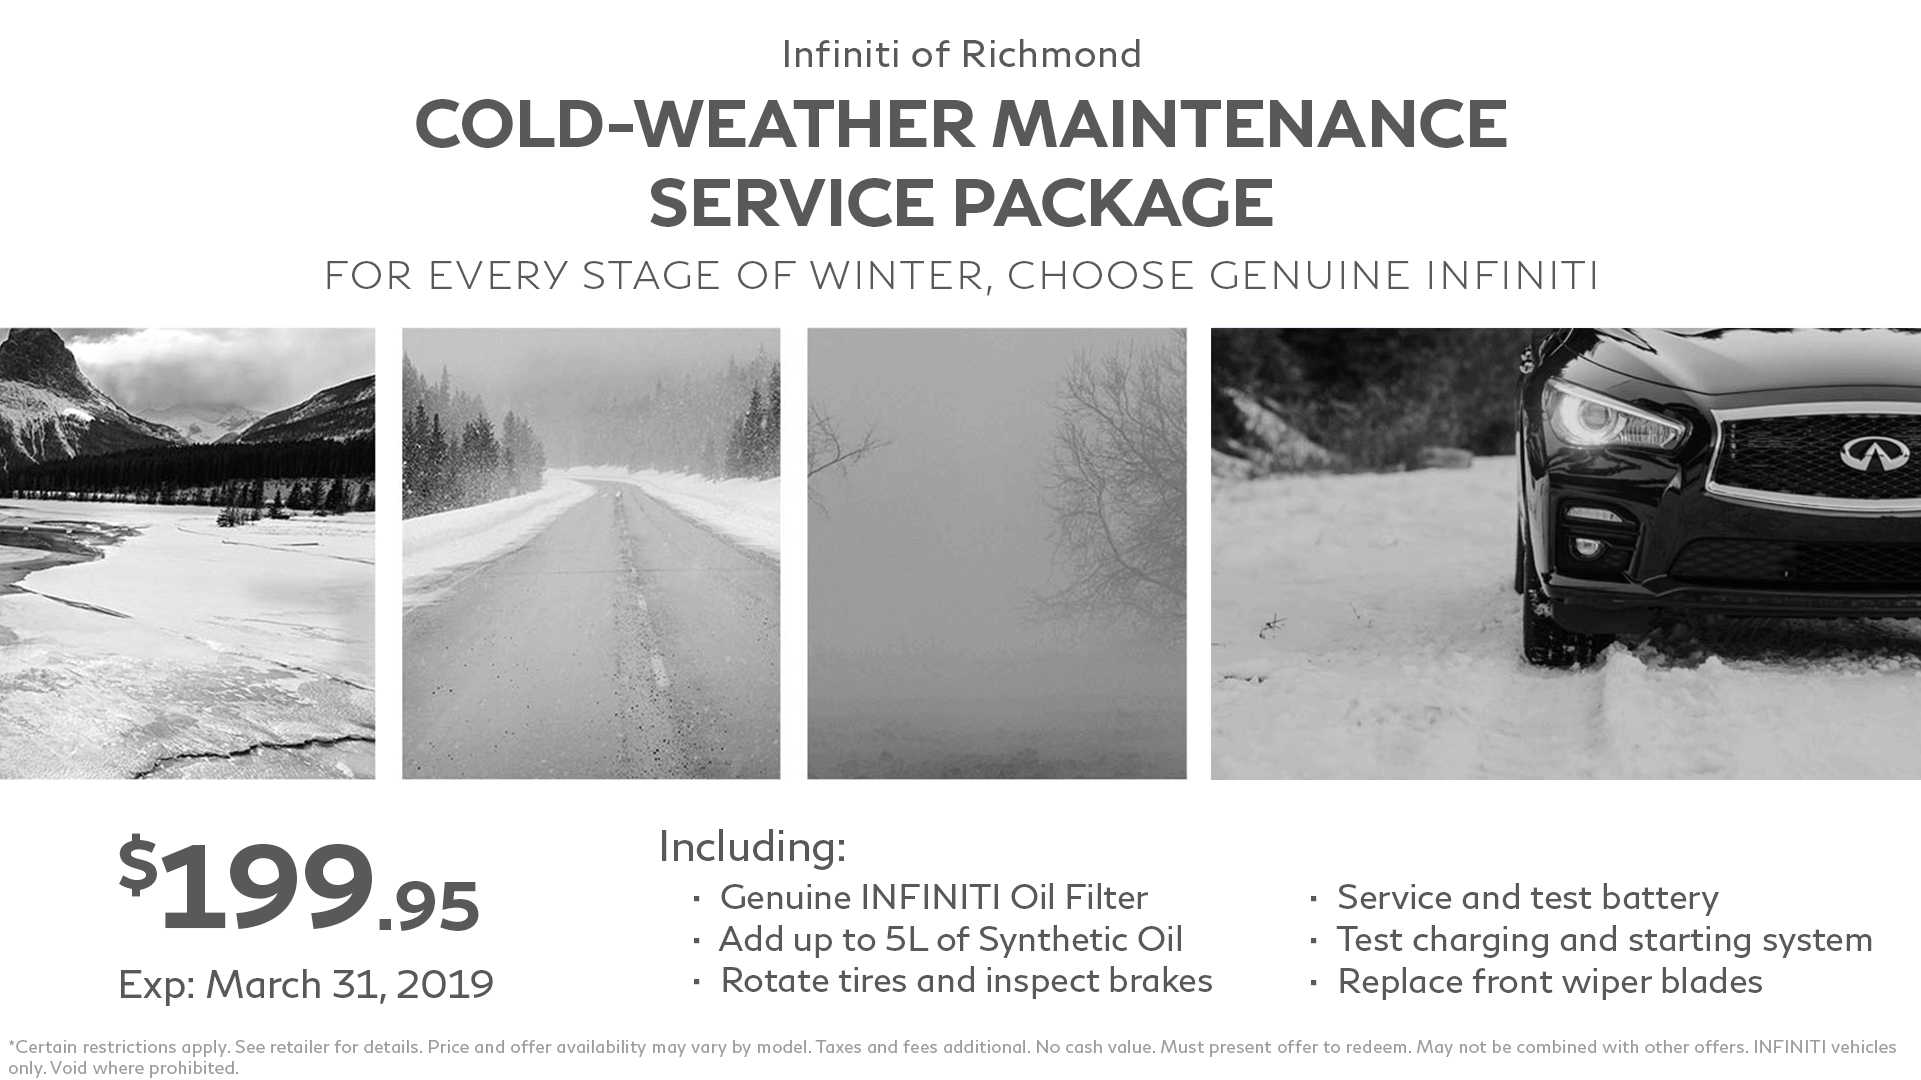 Cold-Weather Maintenance Service Package